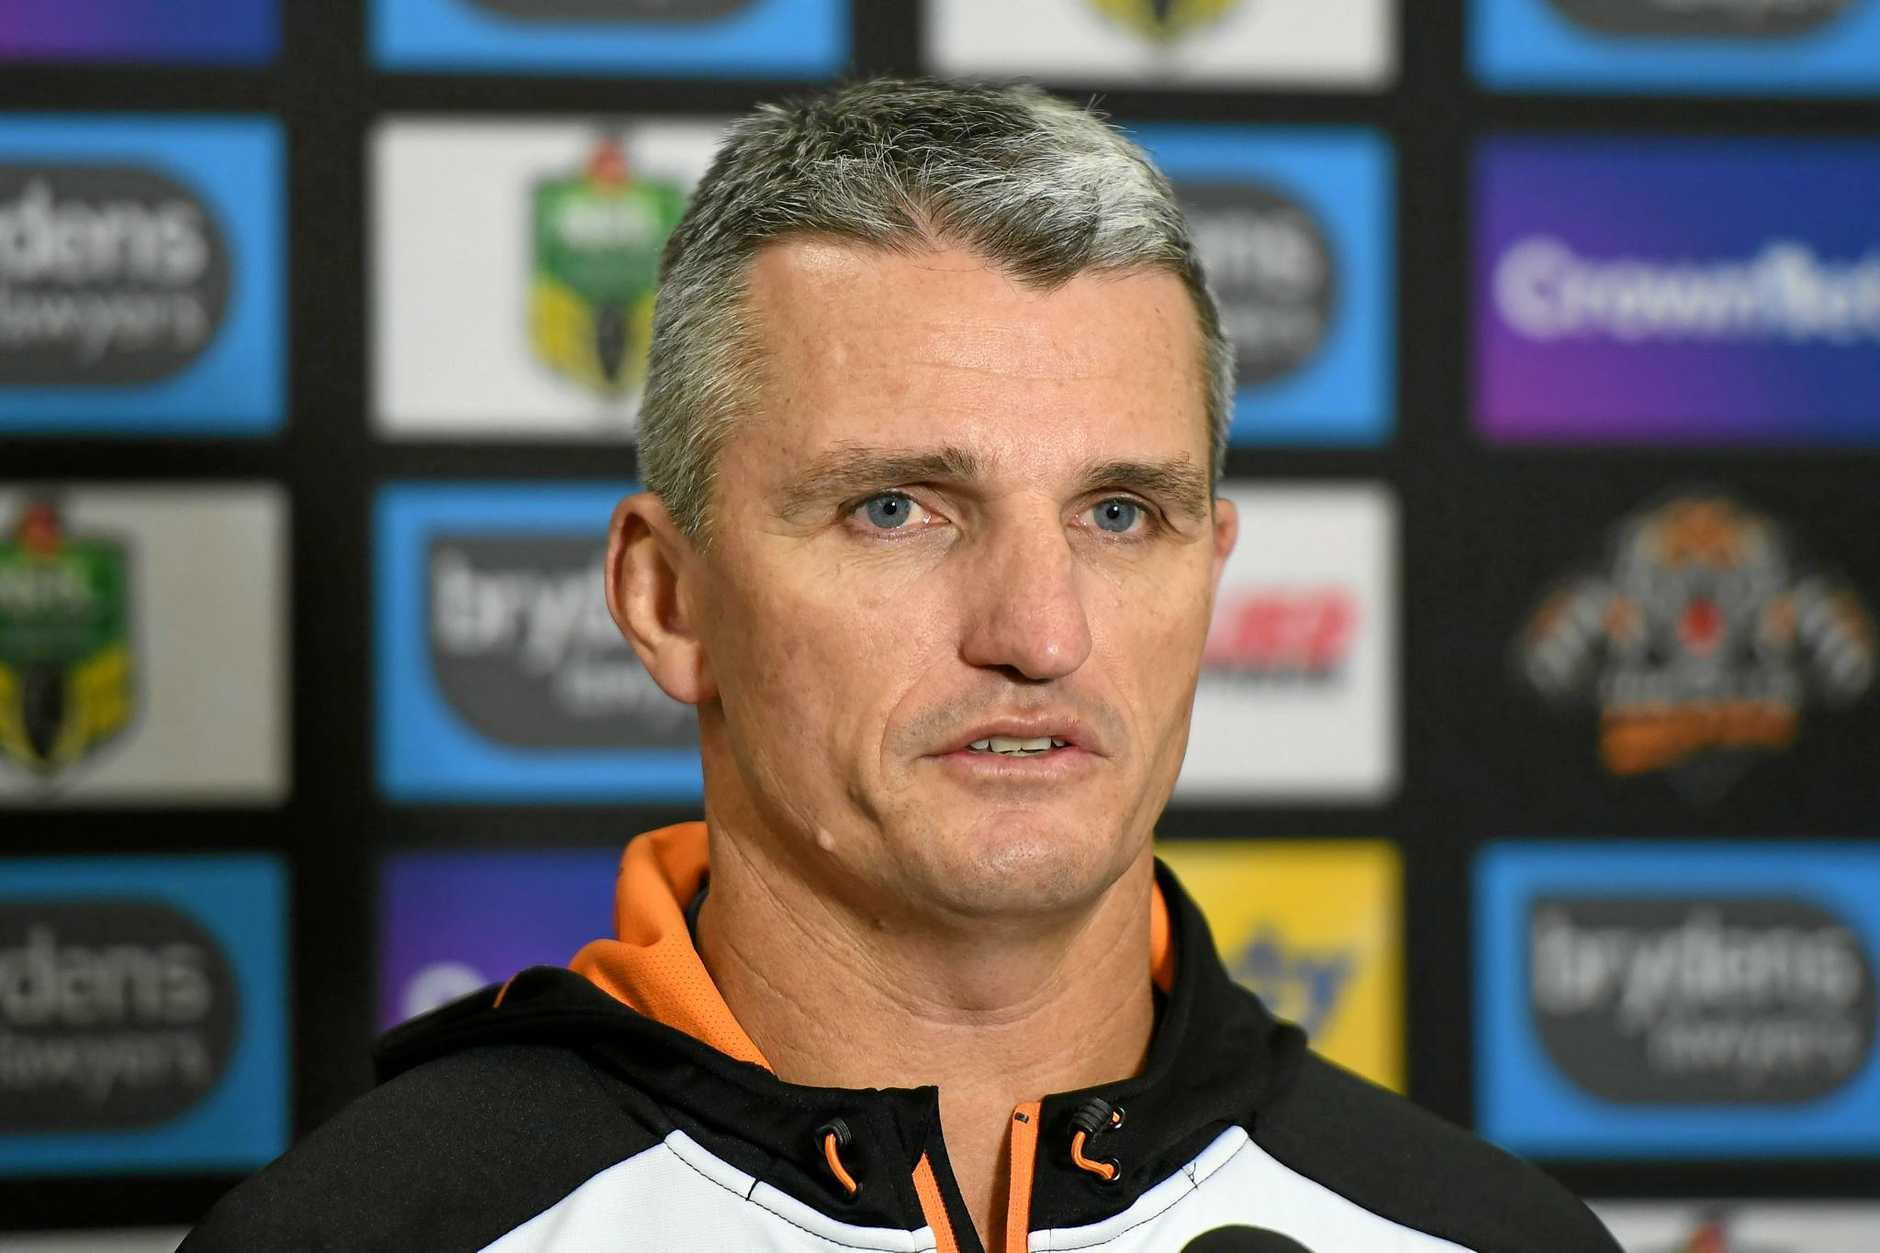 Wests Tigers coach Ivan Cleary speaks to reporters before a training session.